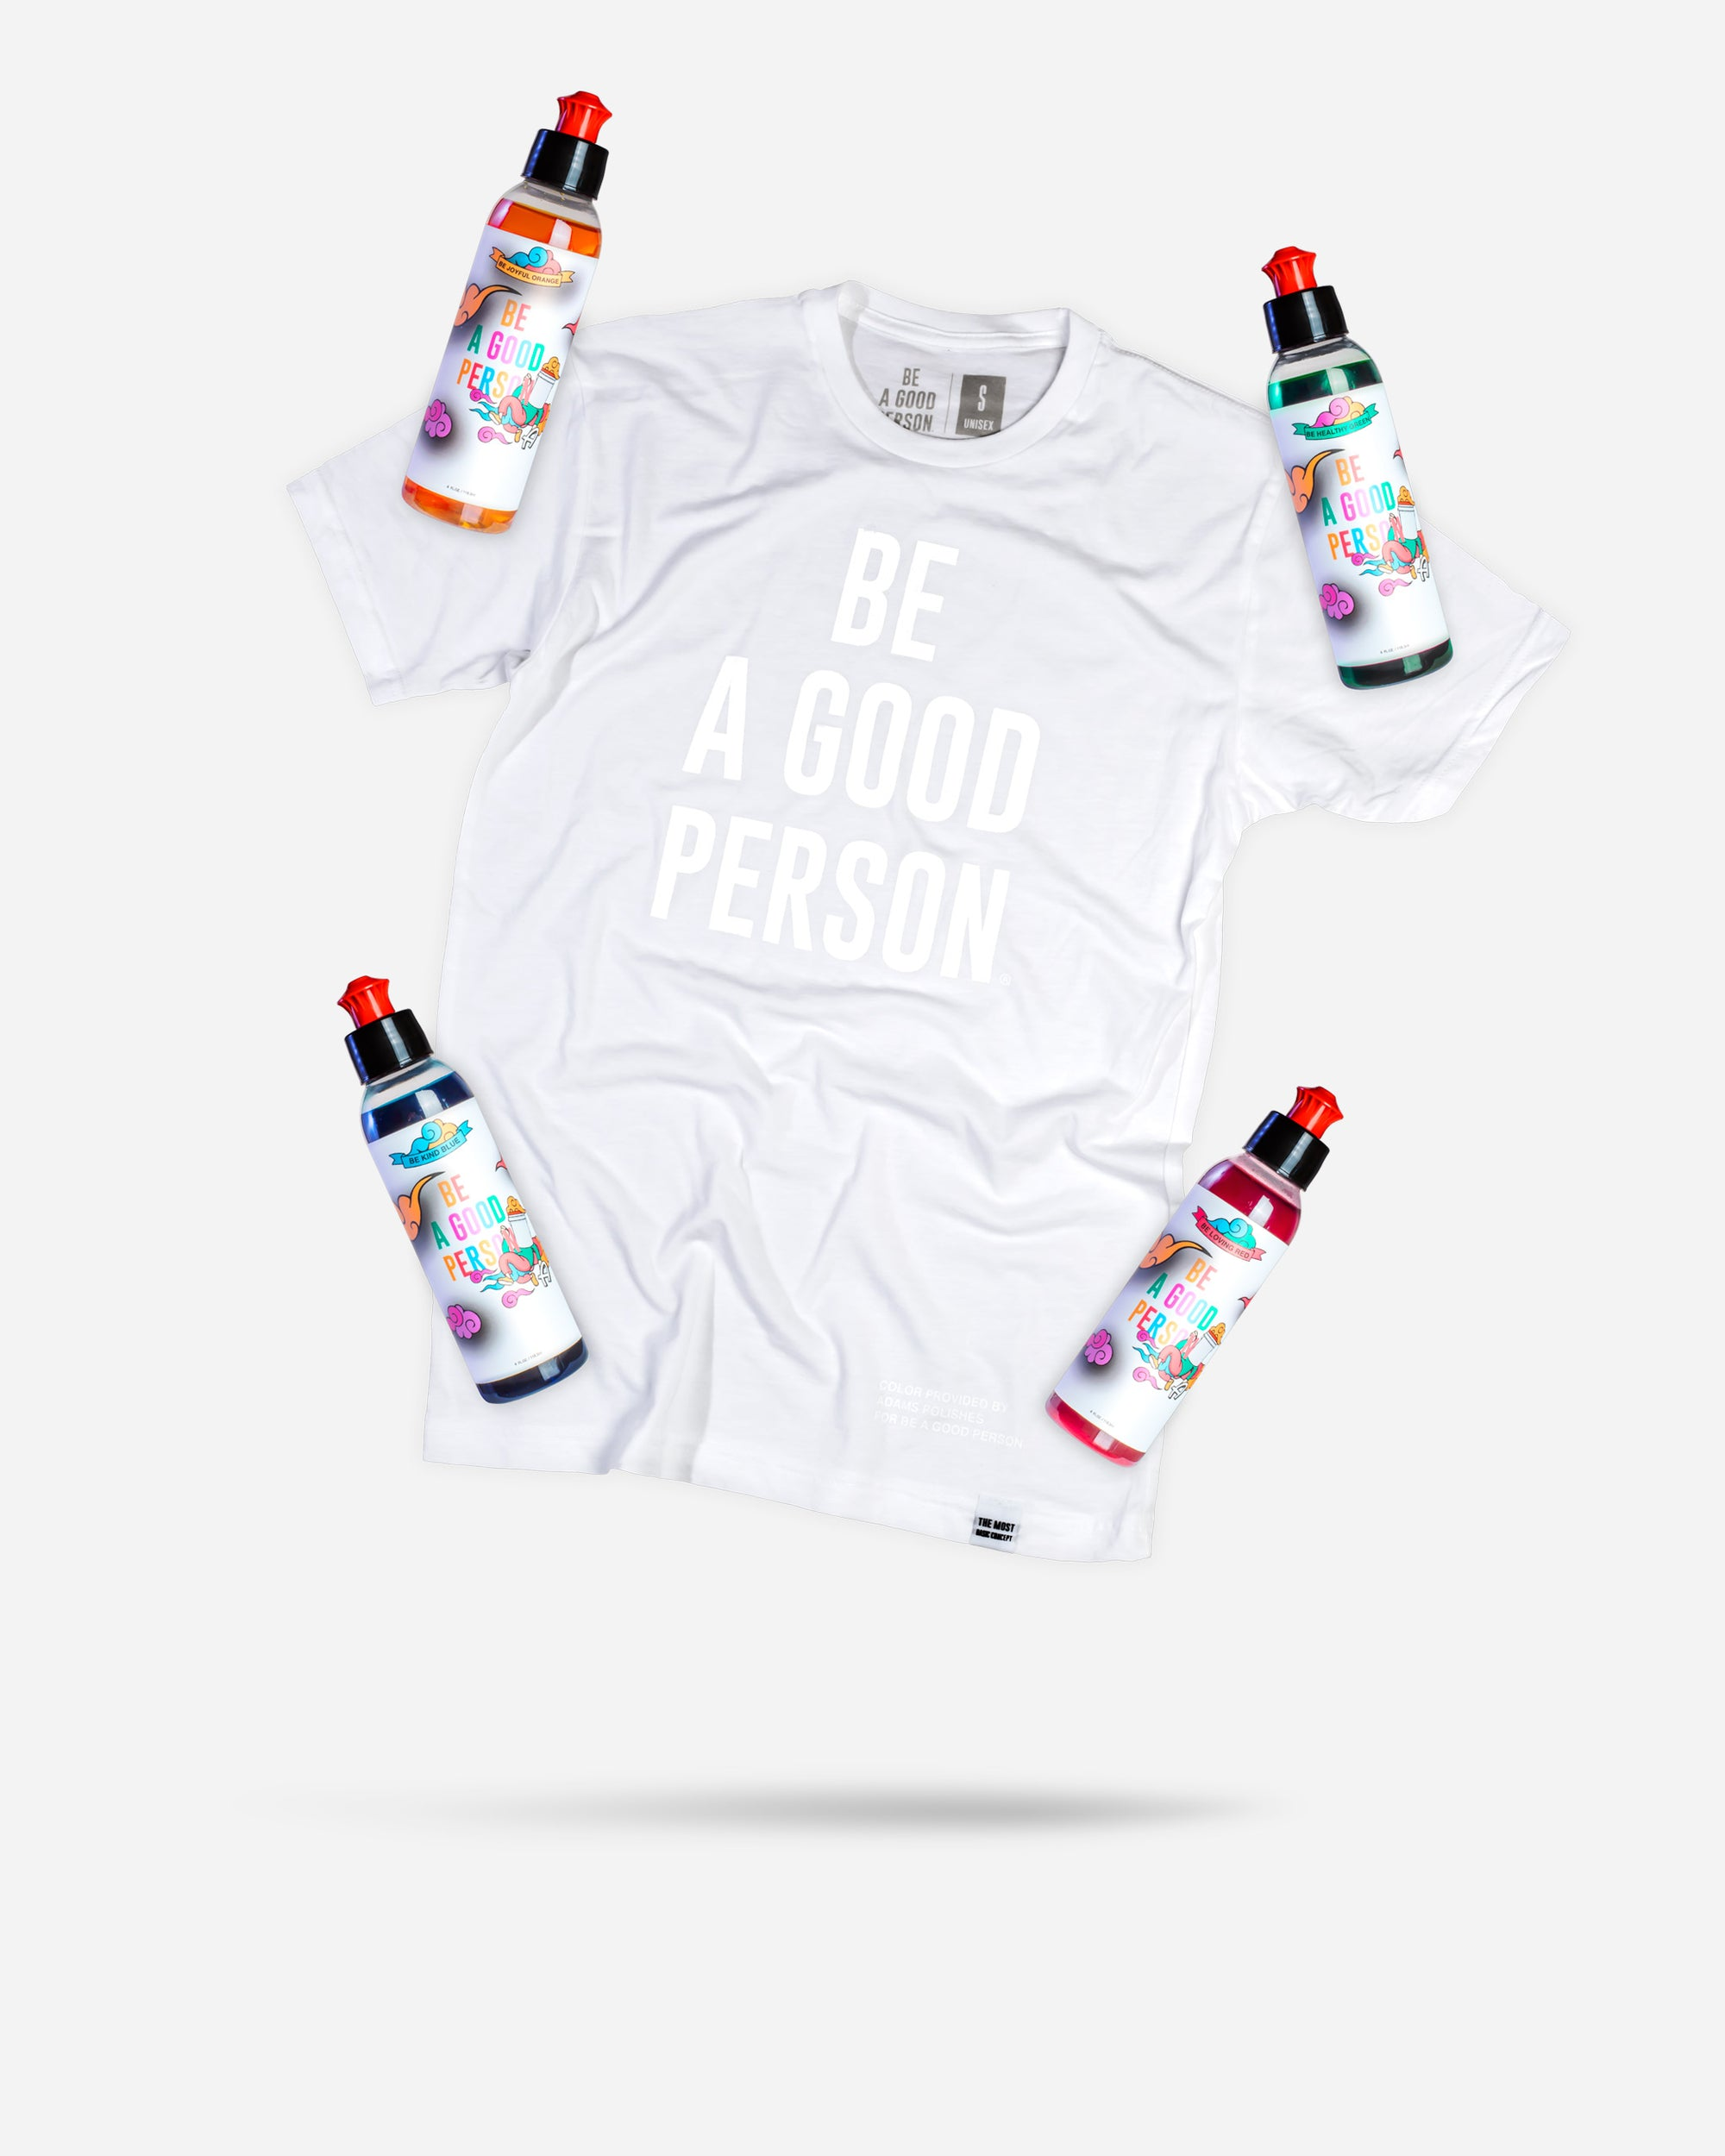 Be A Good Person X Adam's Polishes T-Shirt